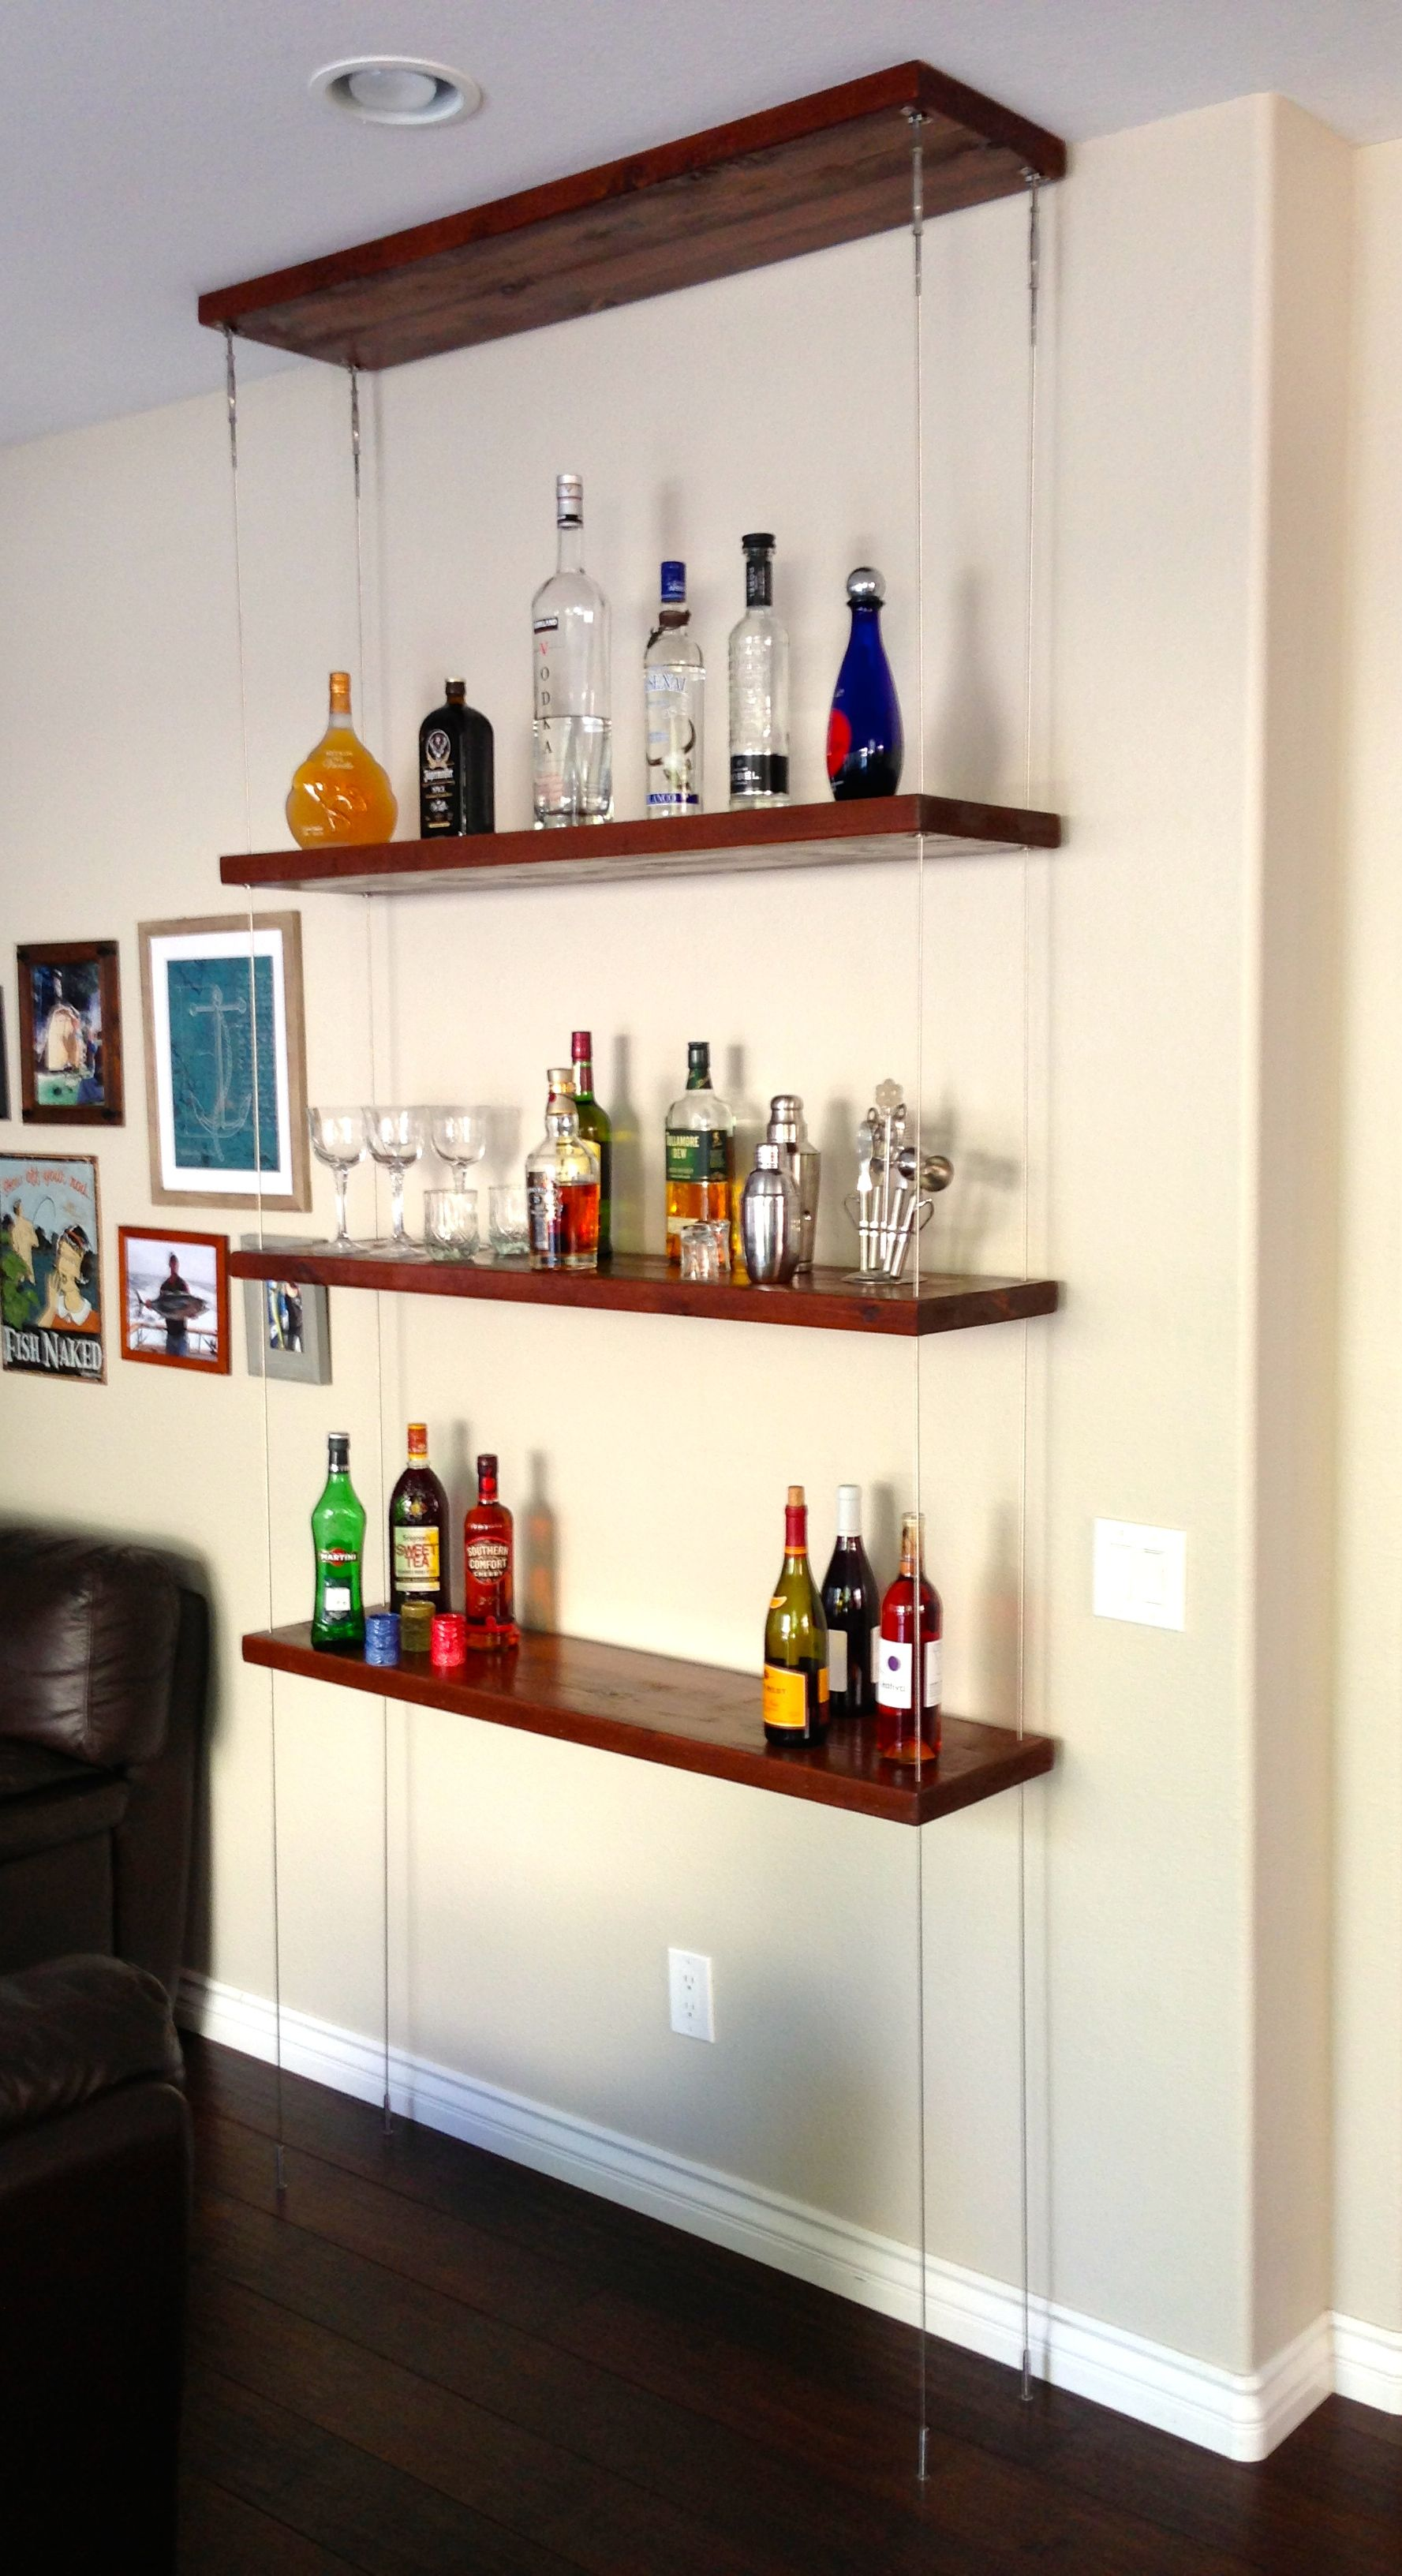 Suspended Shelving Unit Attaches To Ceiling And Floor Using Diy